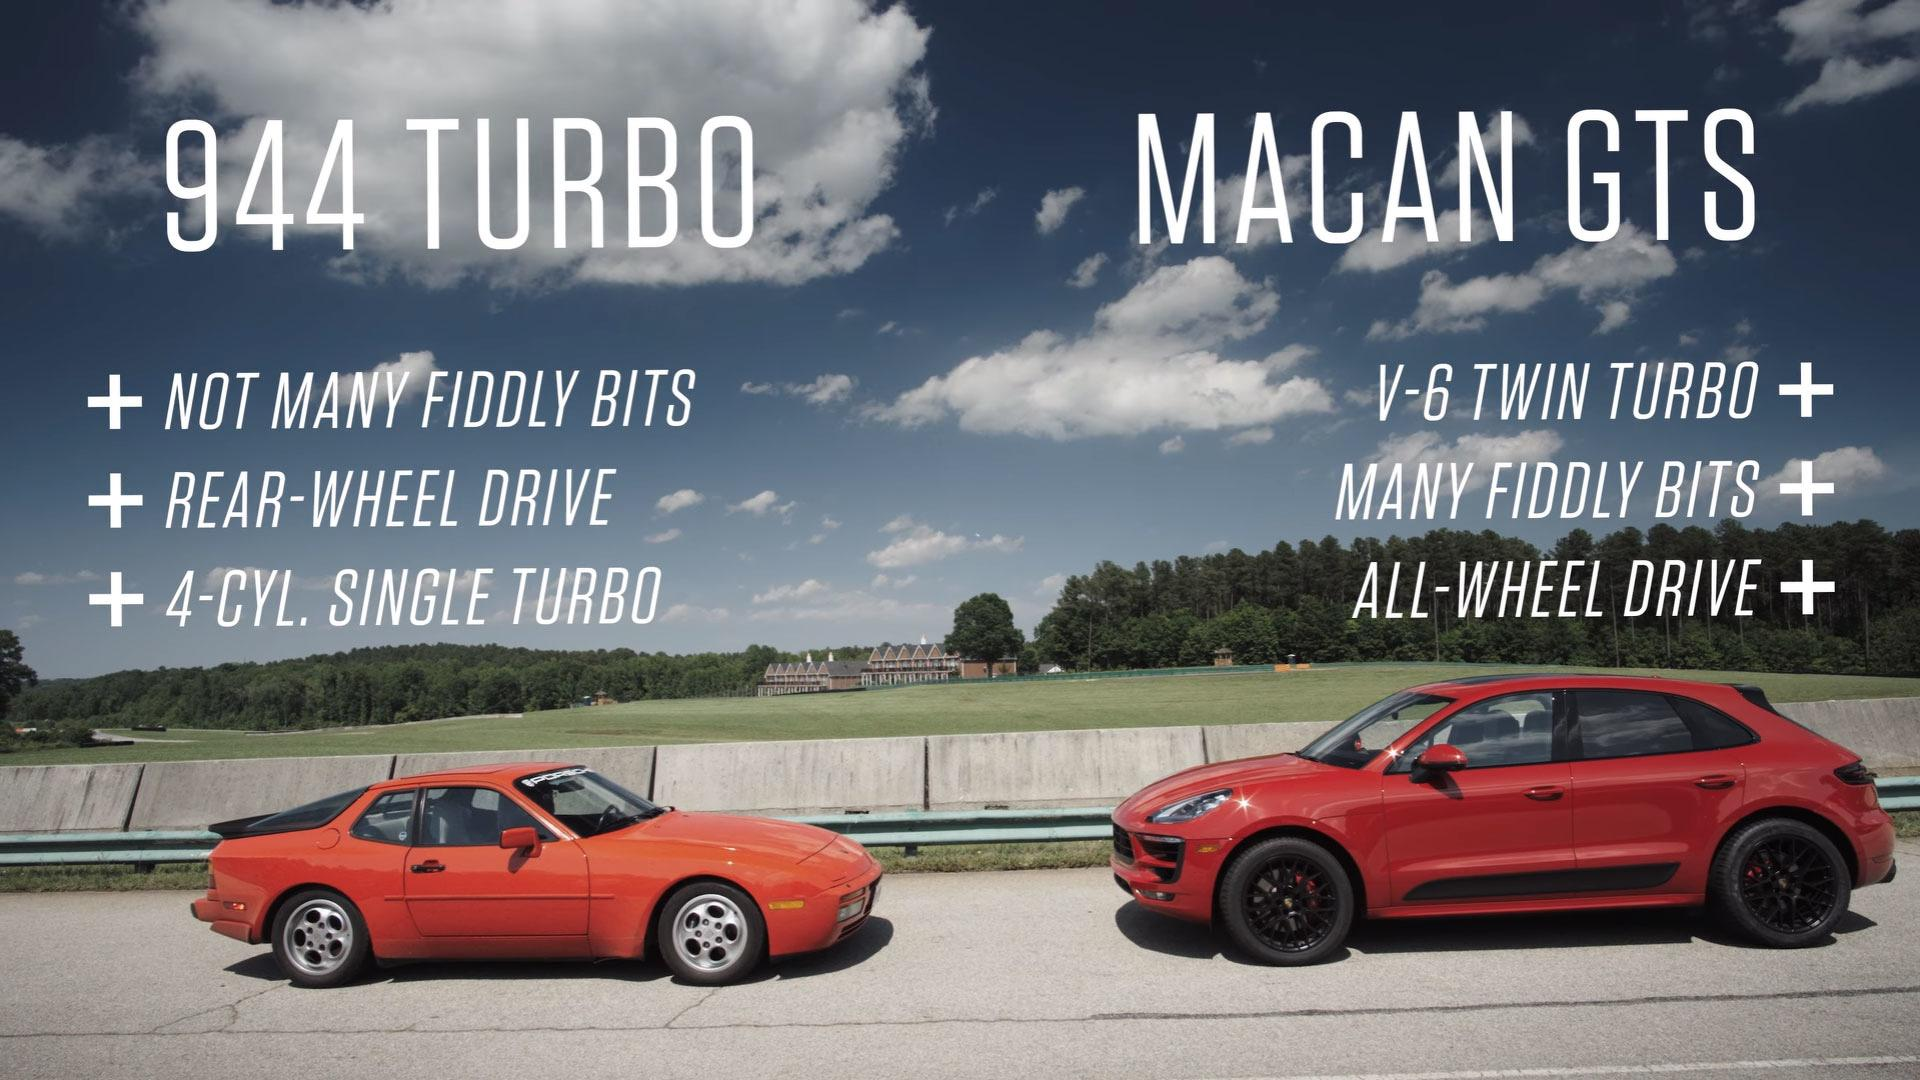 how does a porsche 944 turbo pare to a macan gts on the track